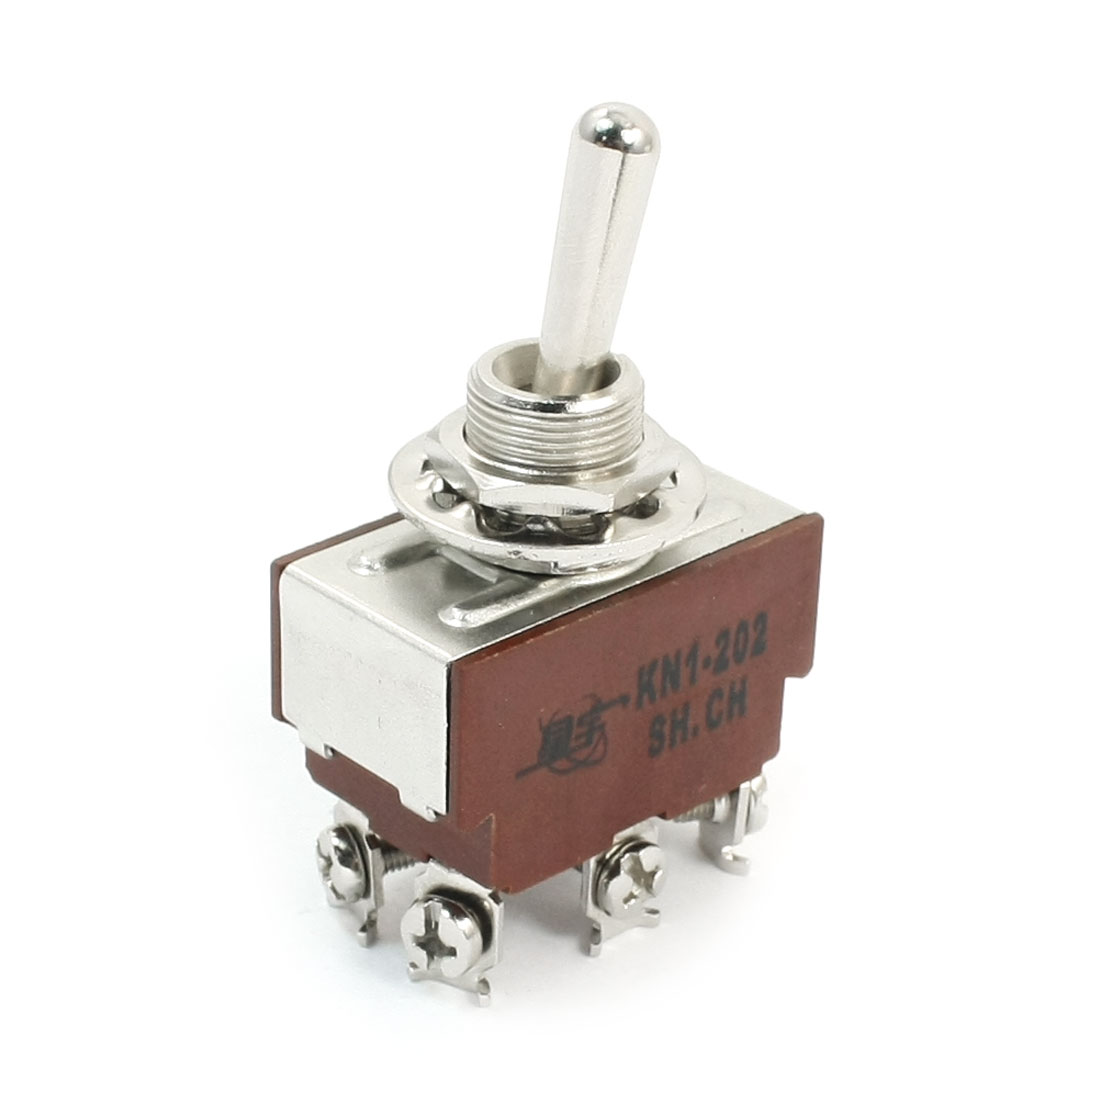 KN1-202 DPDT 2 Positions Latching 6-Terminals Toggle Switch AC250V 5A